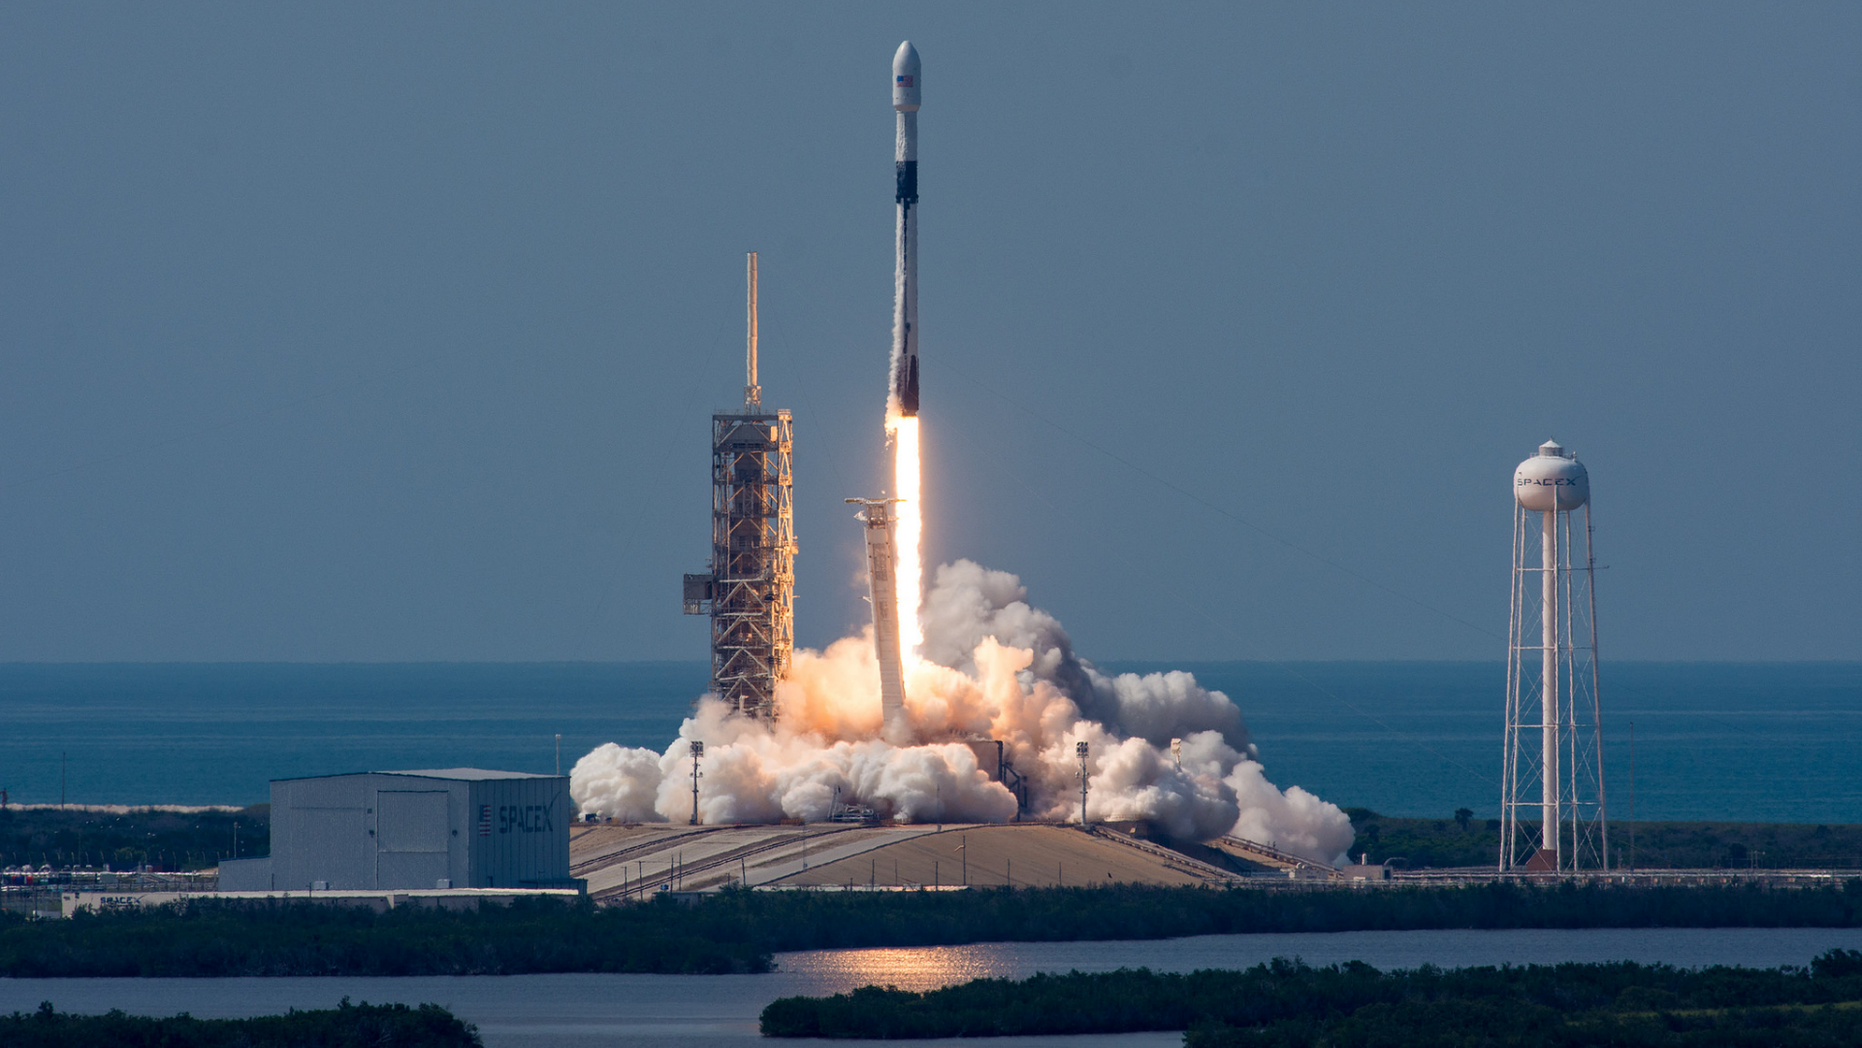 """SpaceX's first """"Block 5"""" Falcon 9 rocket launches from NASA's Kennedy Space Center on May 11, 2018. On May 24, President Donald Trump signed a new space policy directive that could ease regulations on SpaceX and other commercial spaceflight companies."""